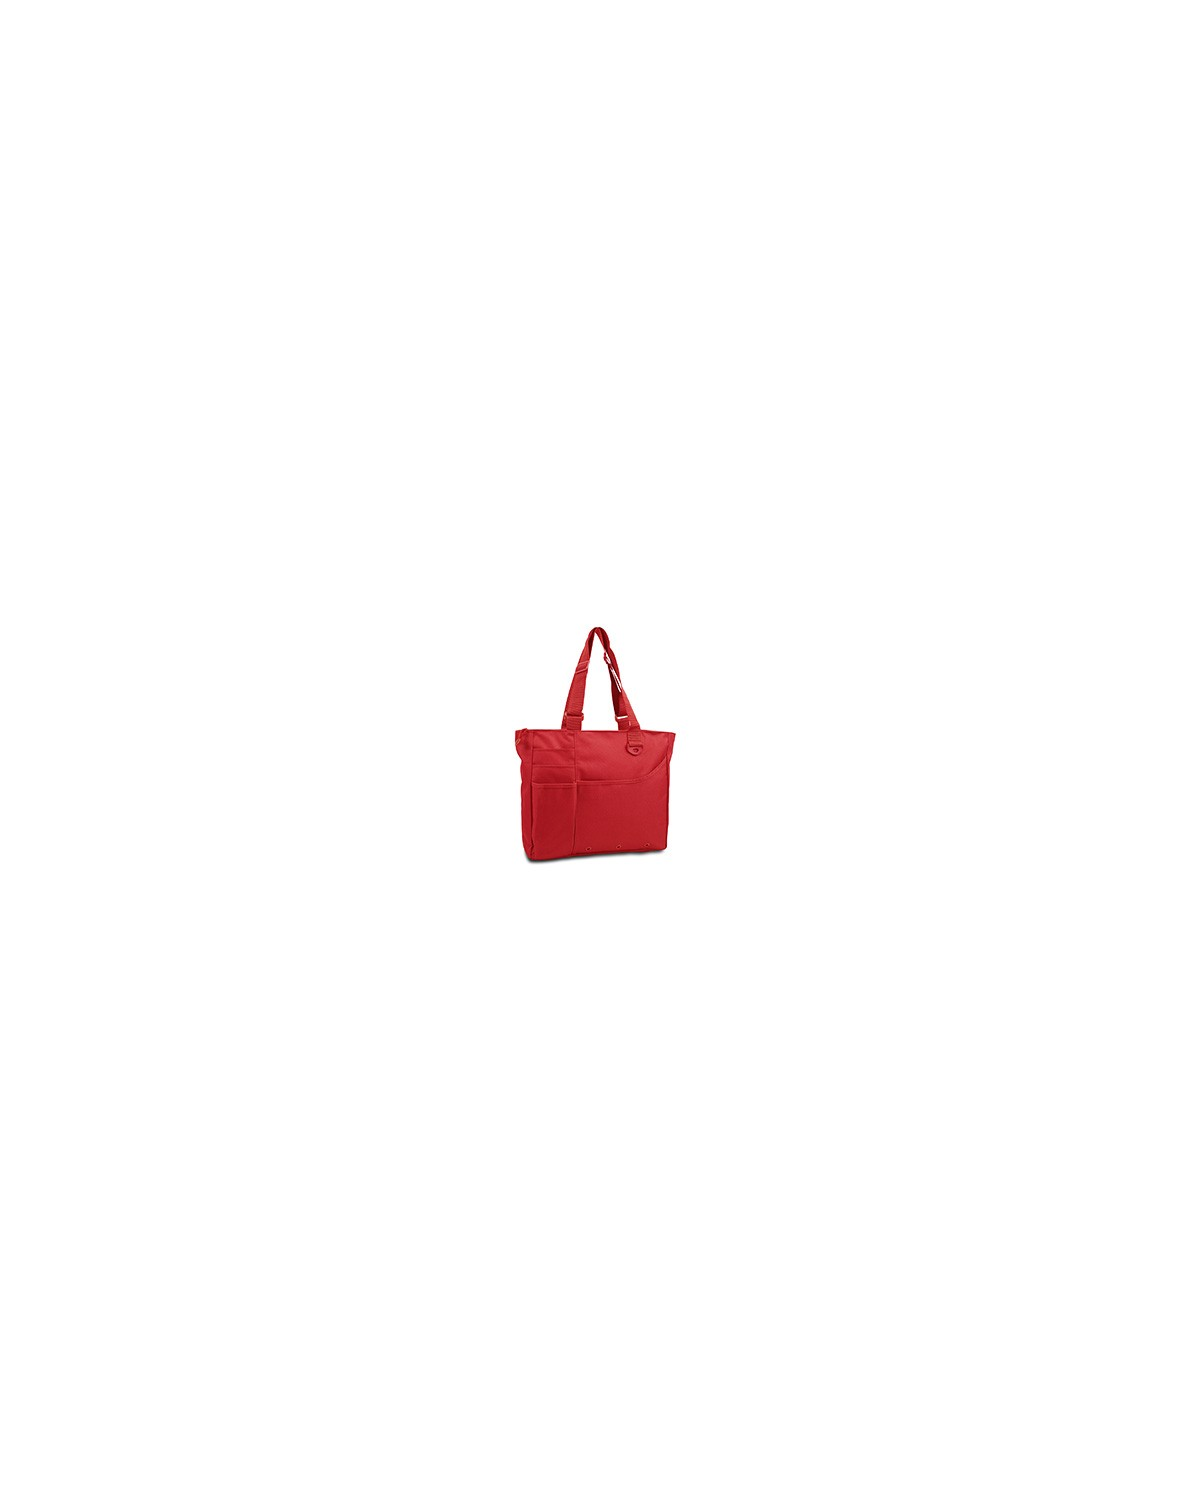 8811 Liberty Bags RED